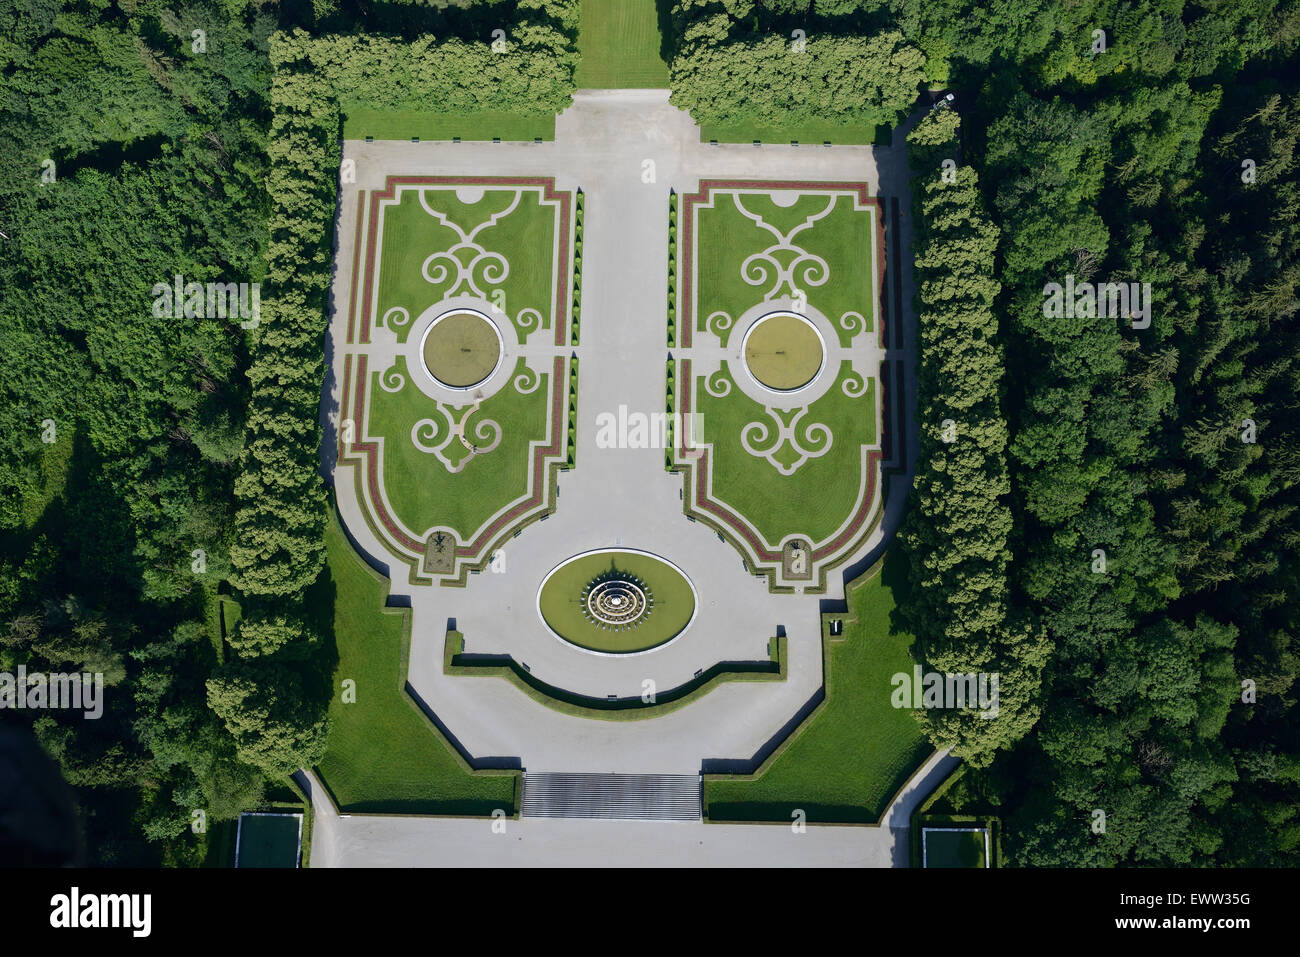 HAPPY FACE (aerial view). Garden at the Herrenchiemsee Palace, Herreninsel island, Chiemsee Lake, Bavaria, Germany. - Stock Image